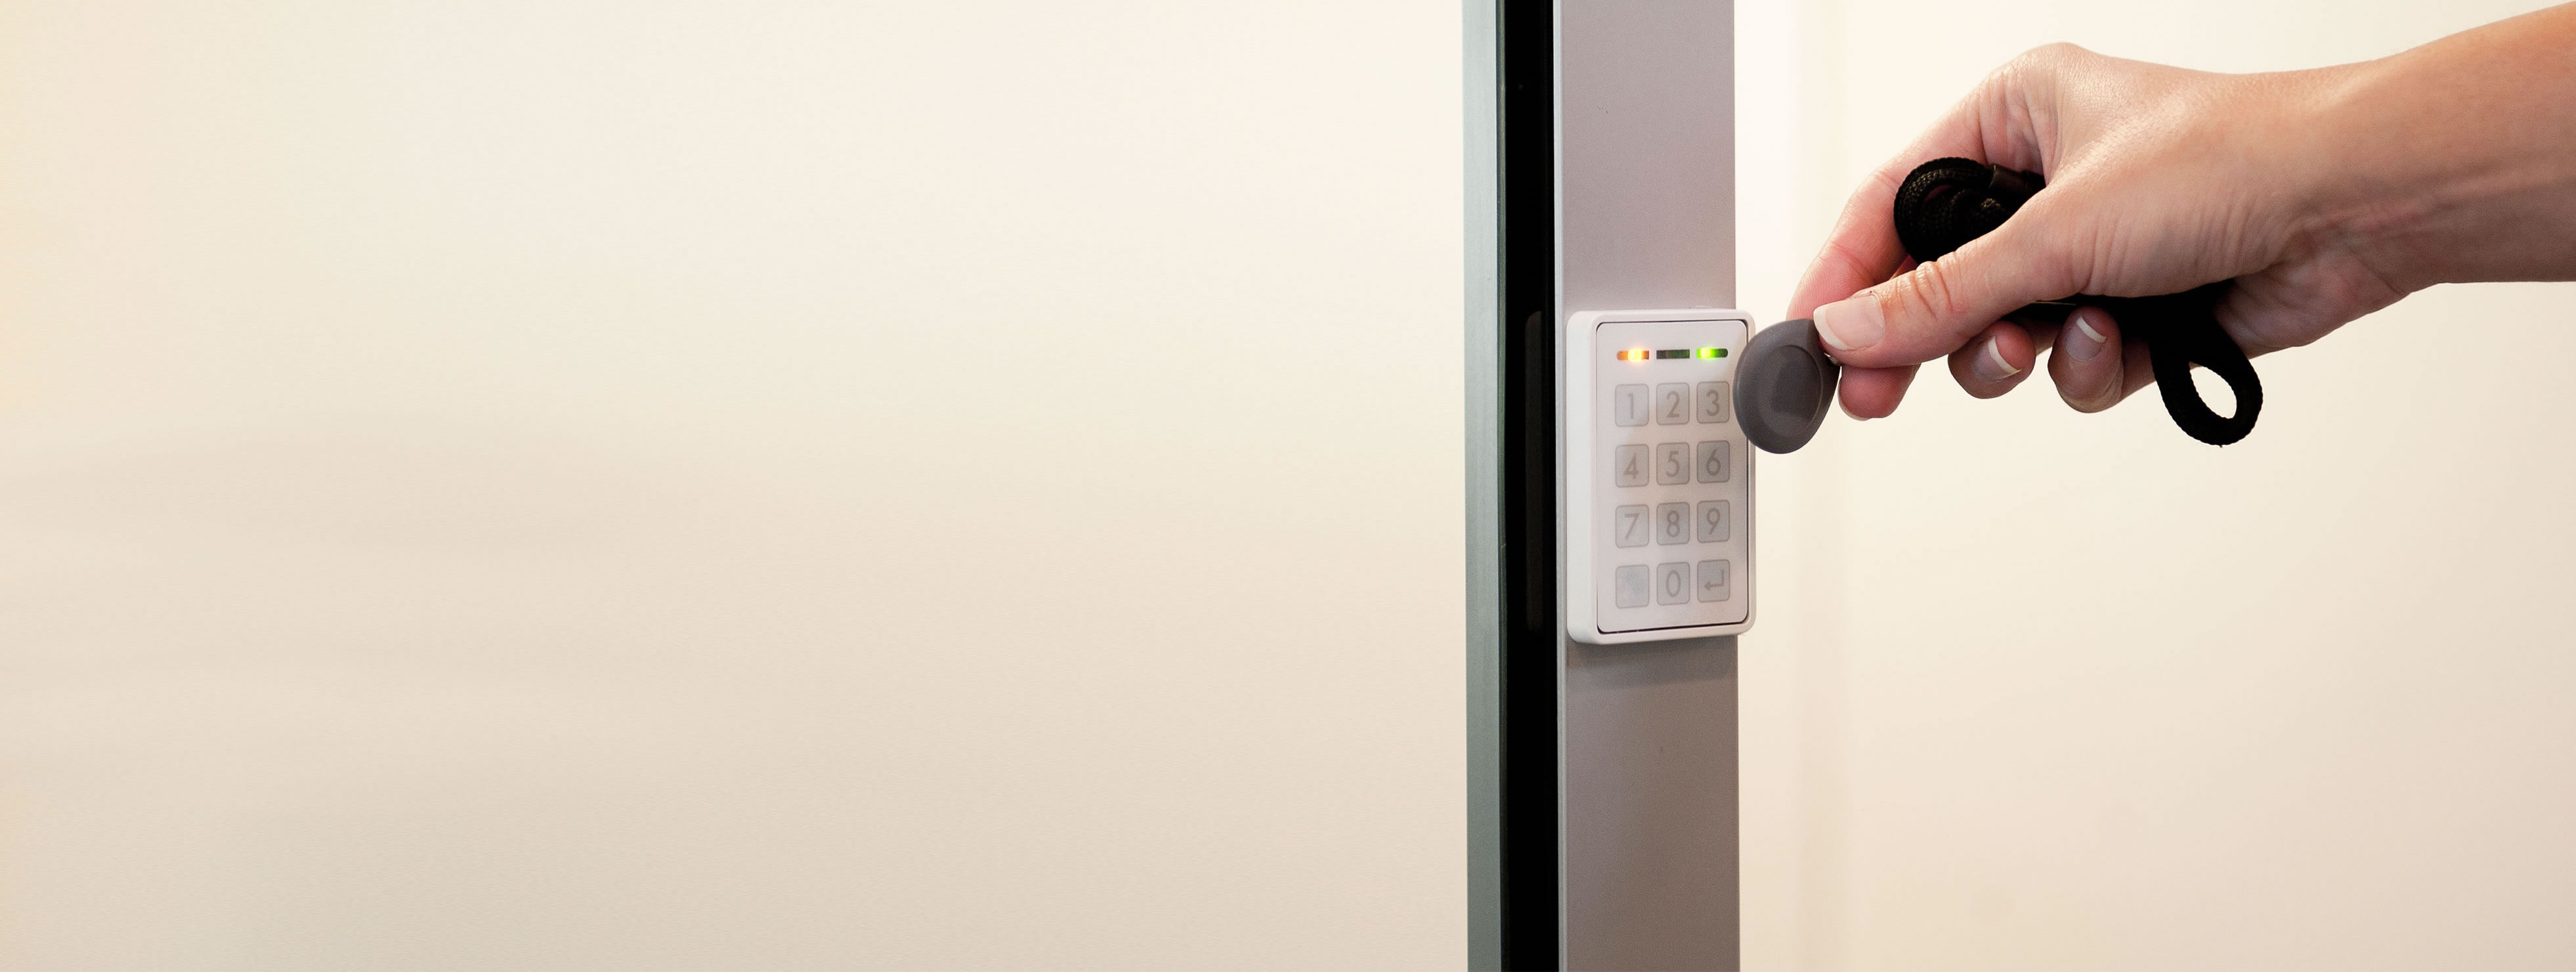 Digital Access Control Systems